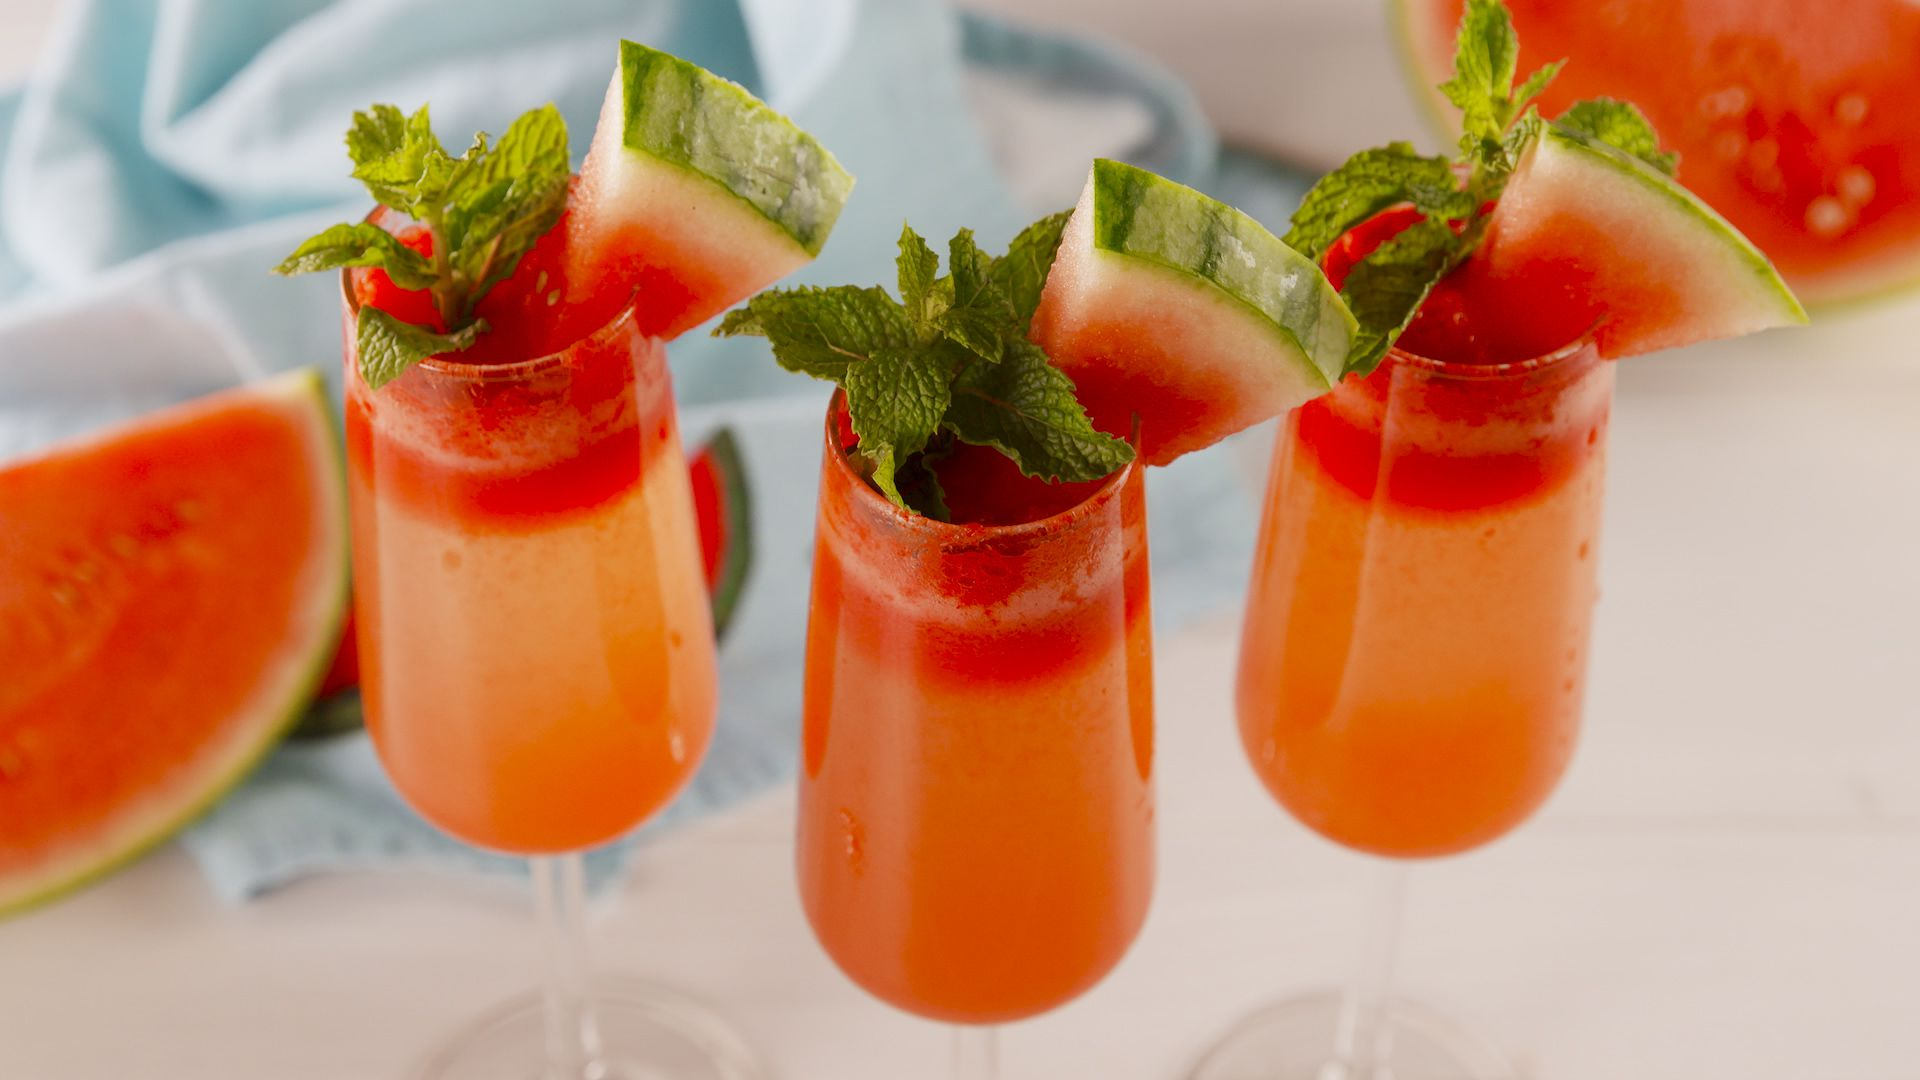 delish-watermelon-mimosa-wide-2-1529703099